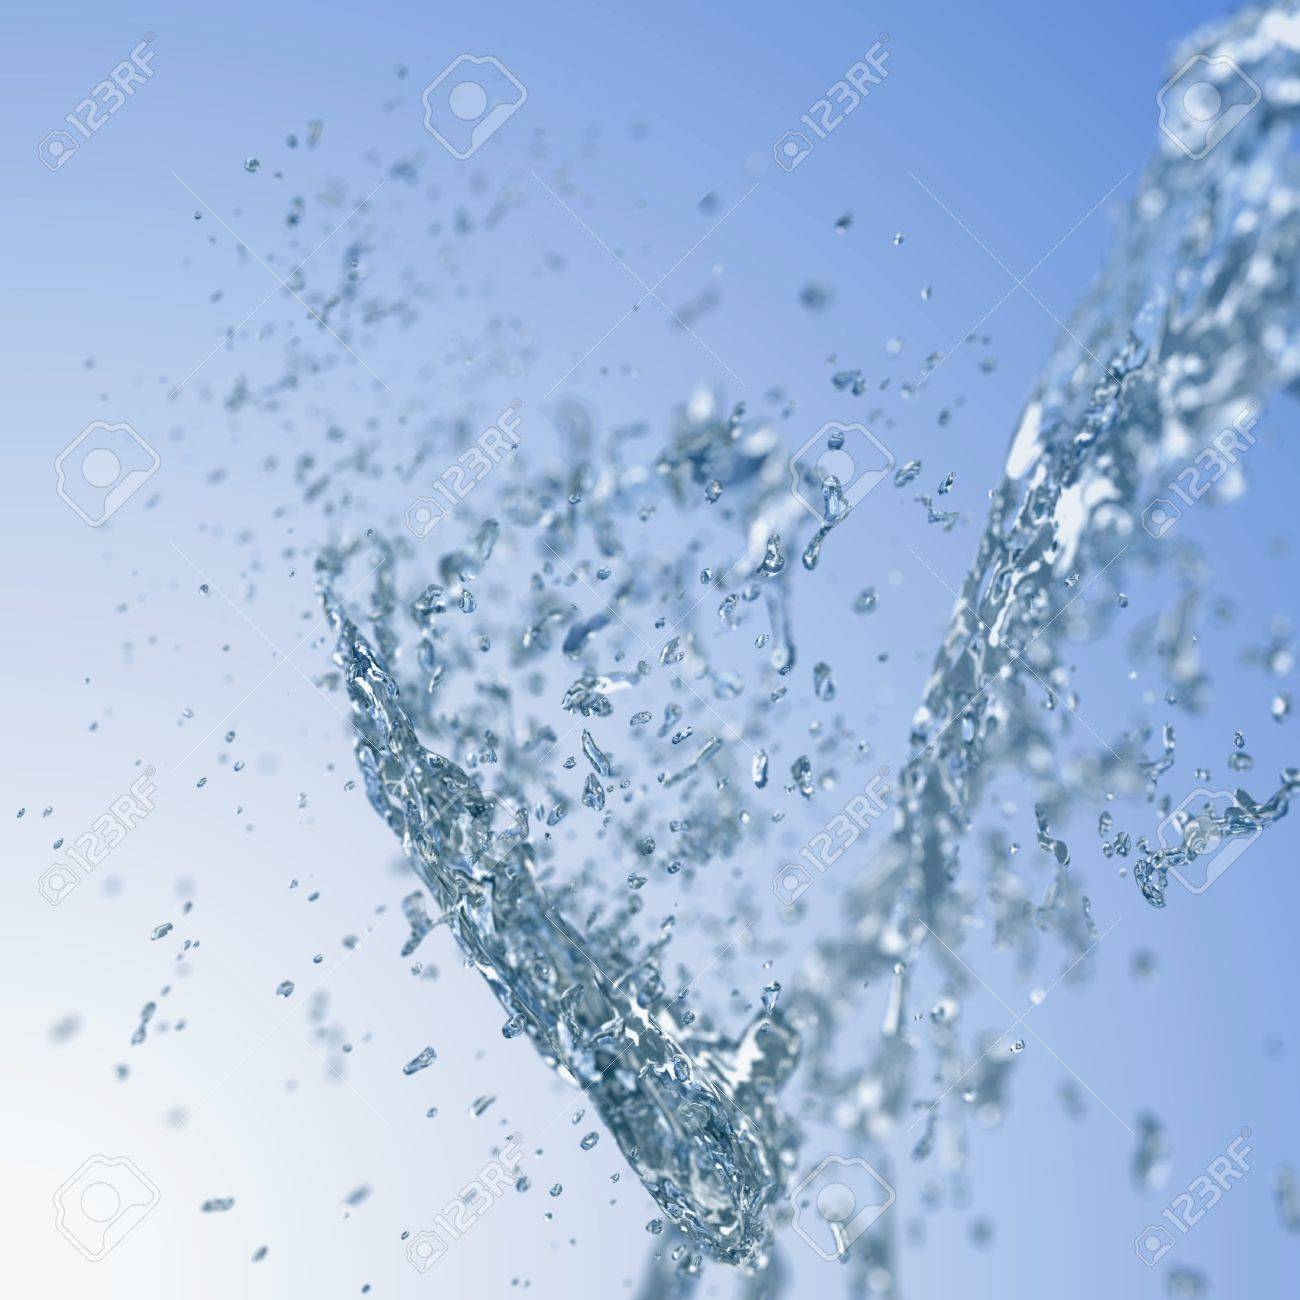 Abstract blurred background with blue water splash. Stock Photo - 19917672